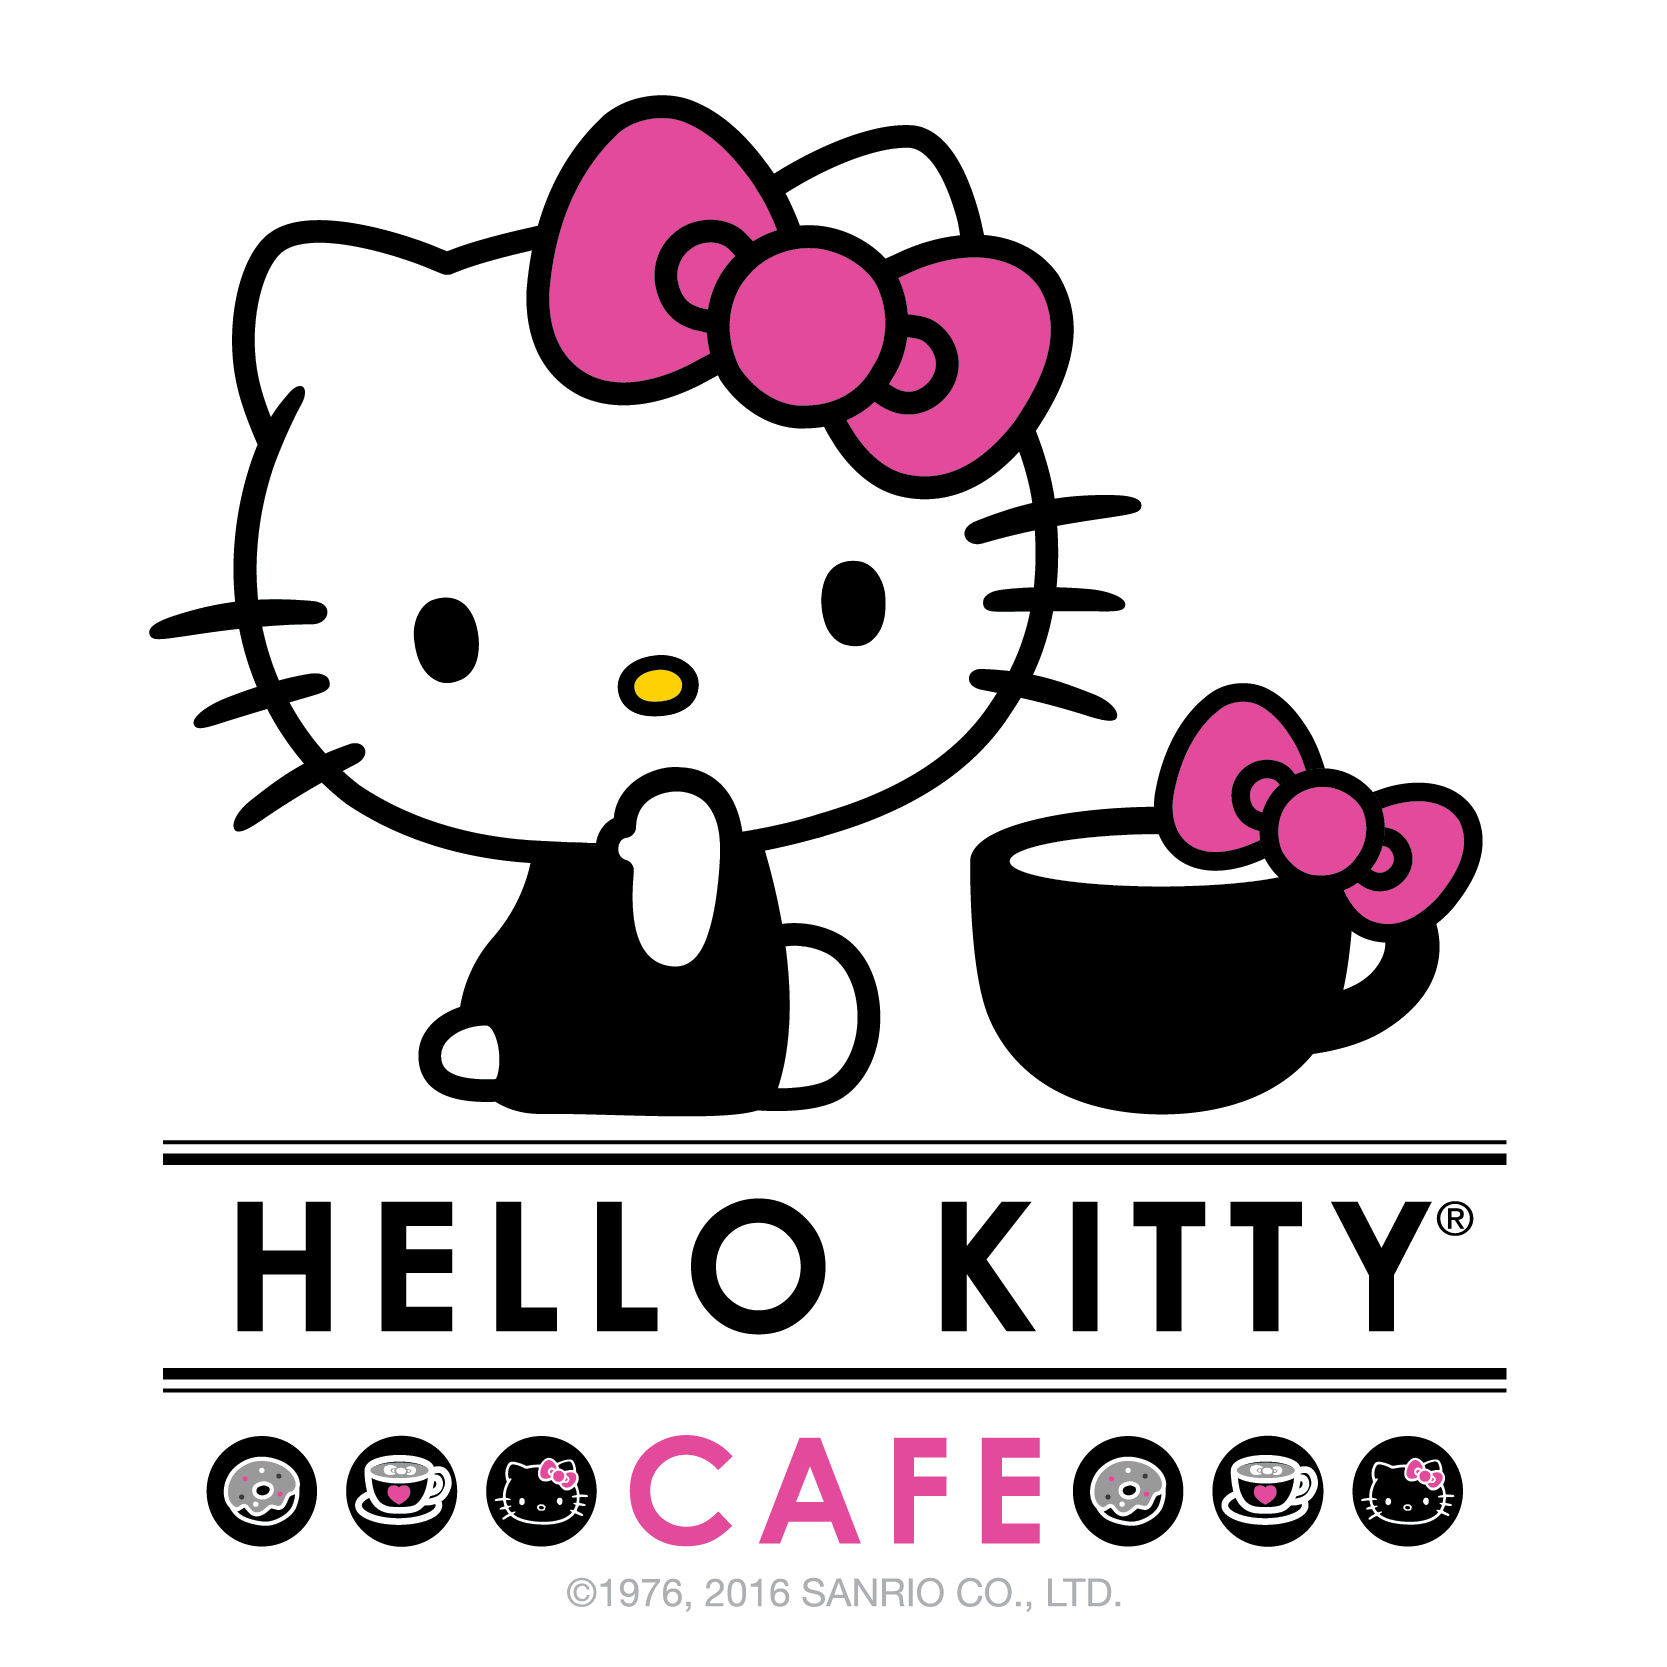 Hello Kitty Cafe Logo  2016